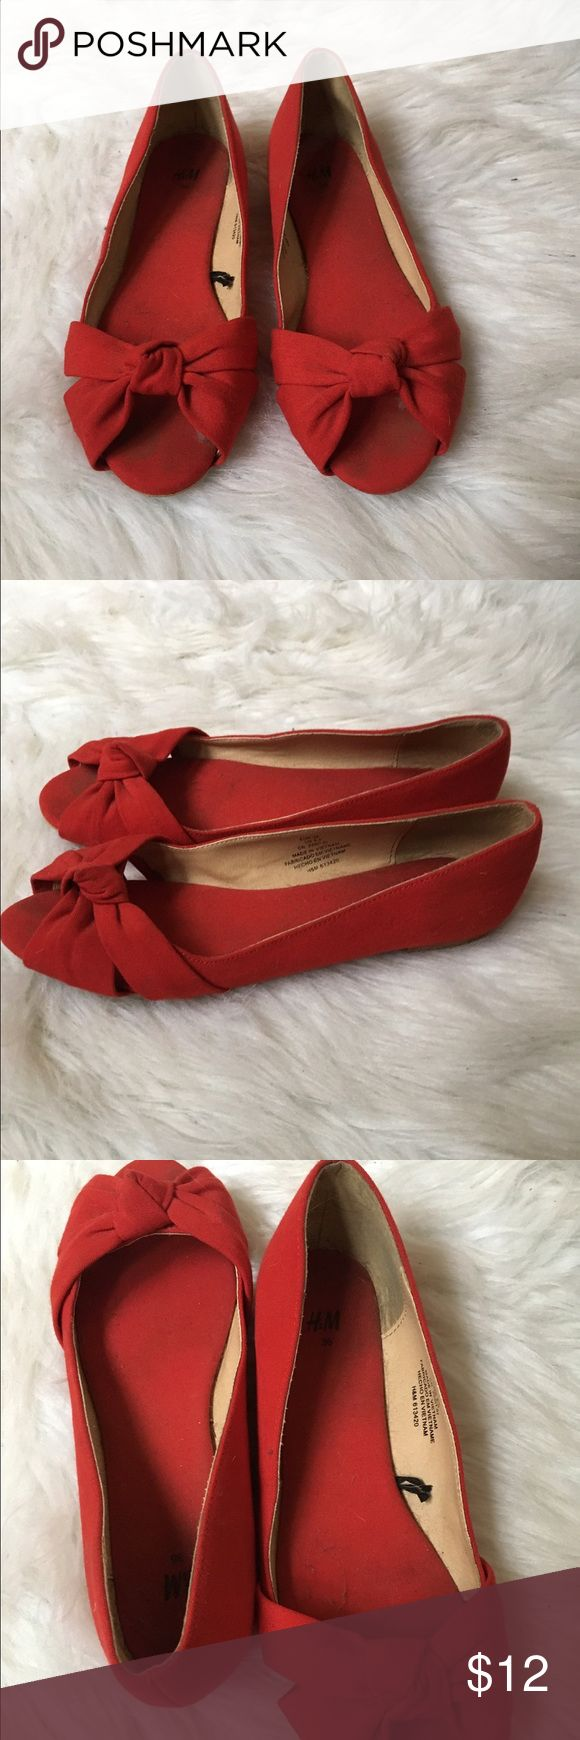 Red peekaboo toe bow flats Only worn once😊 H&M Shoes Flats & Loafers